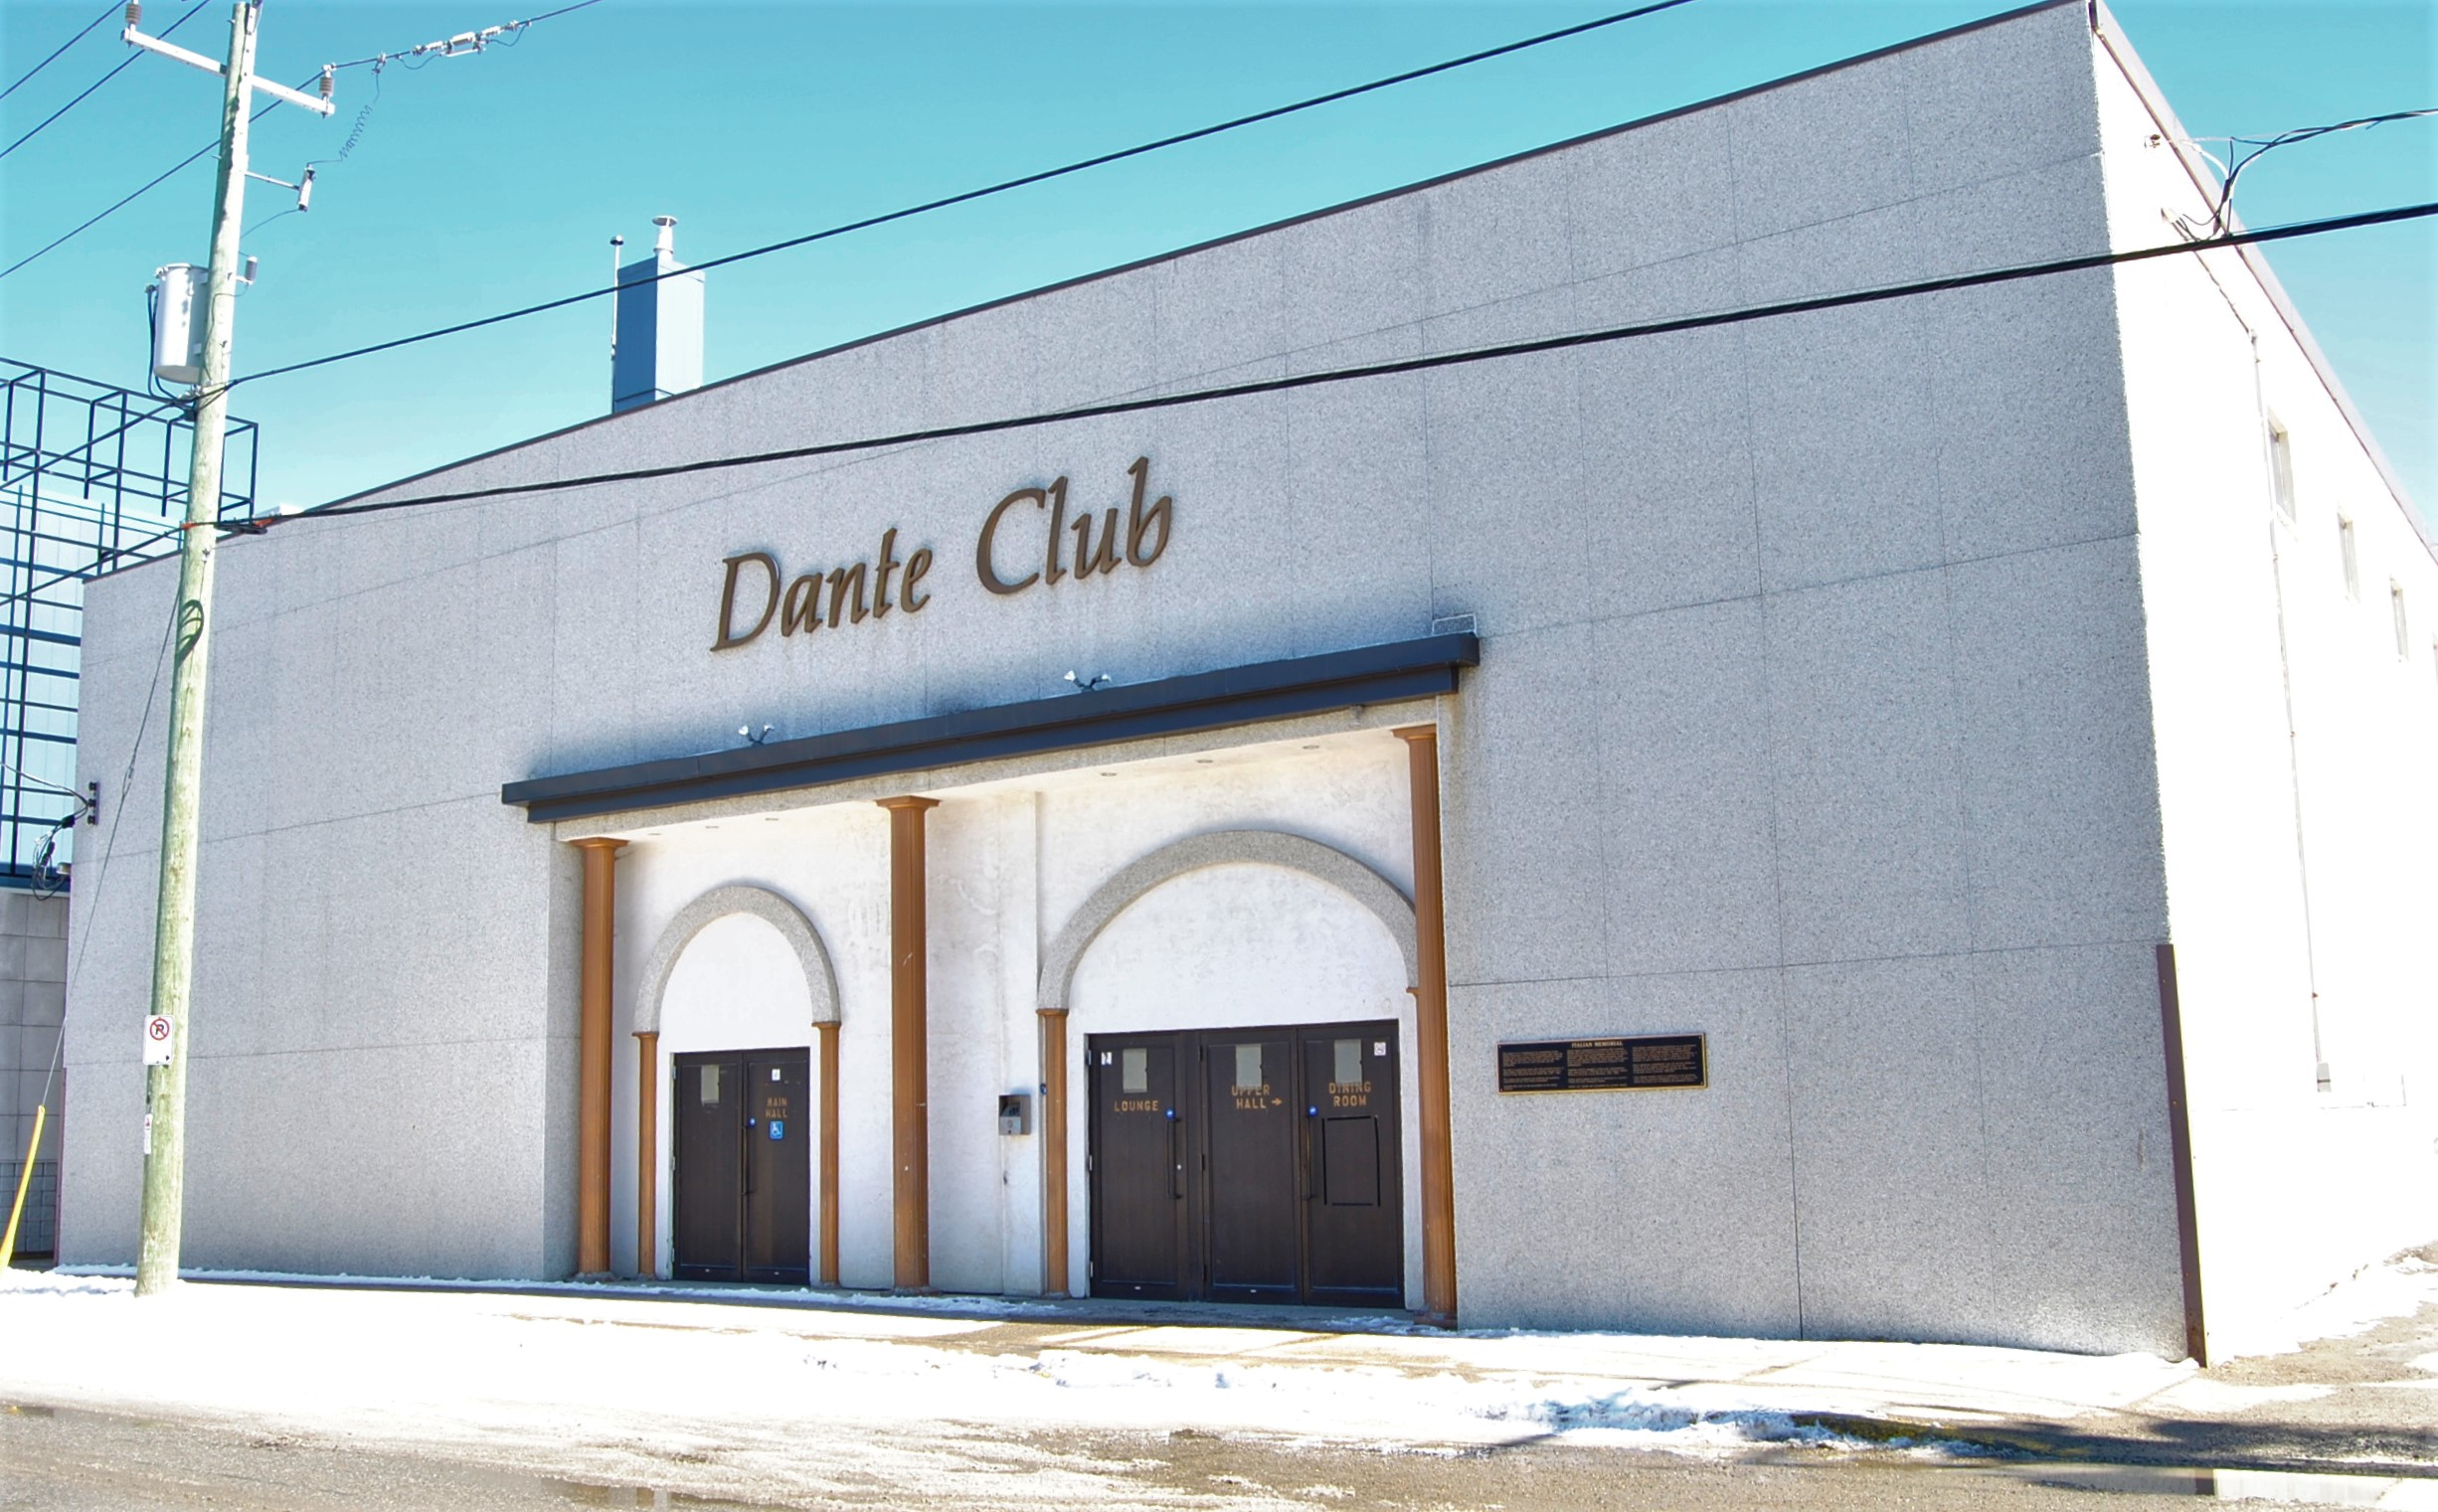 Skinny Friday is April 21 at the Dante Club - TimminsToday com